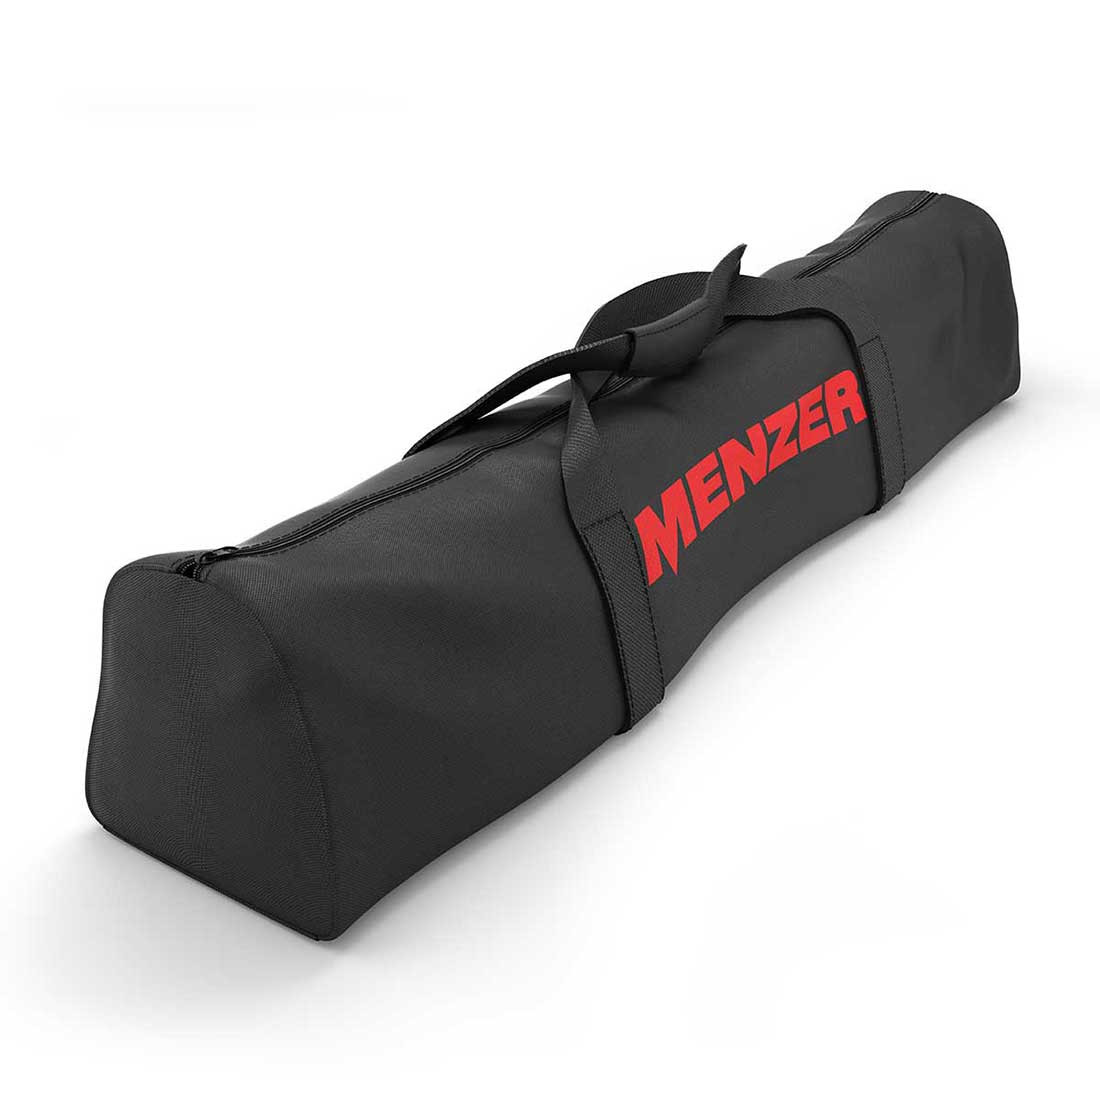 MENZER LHS 225 bag